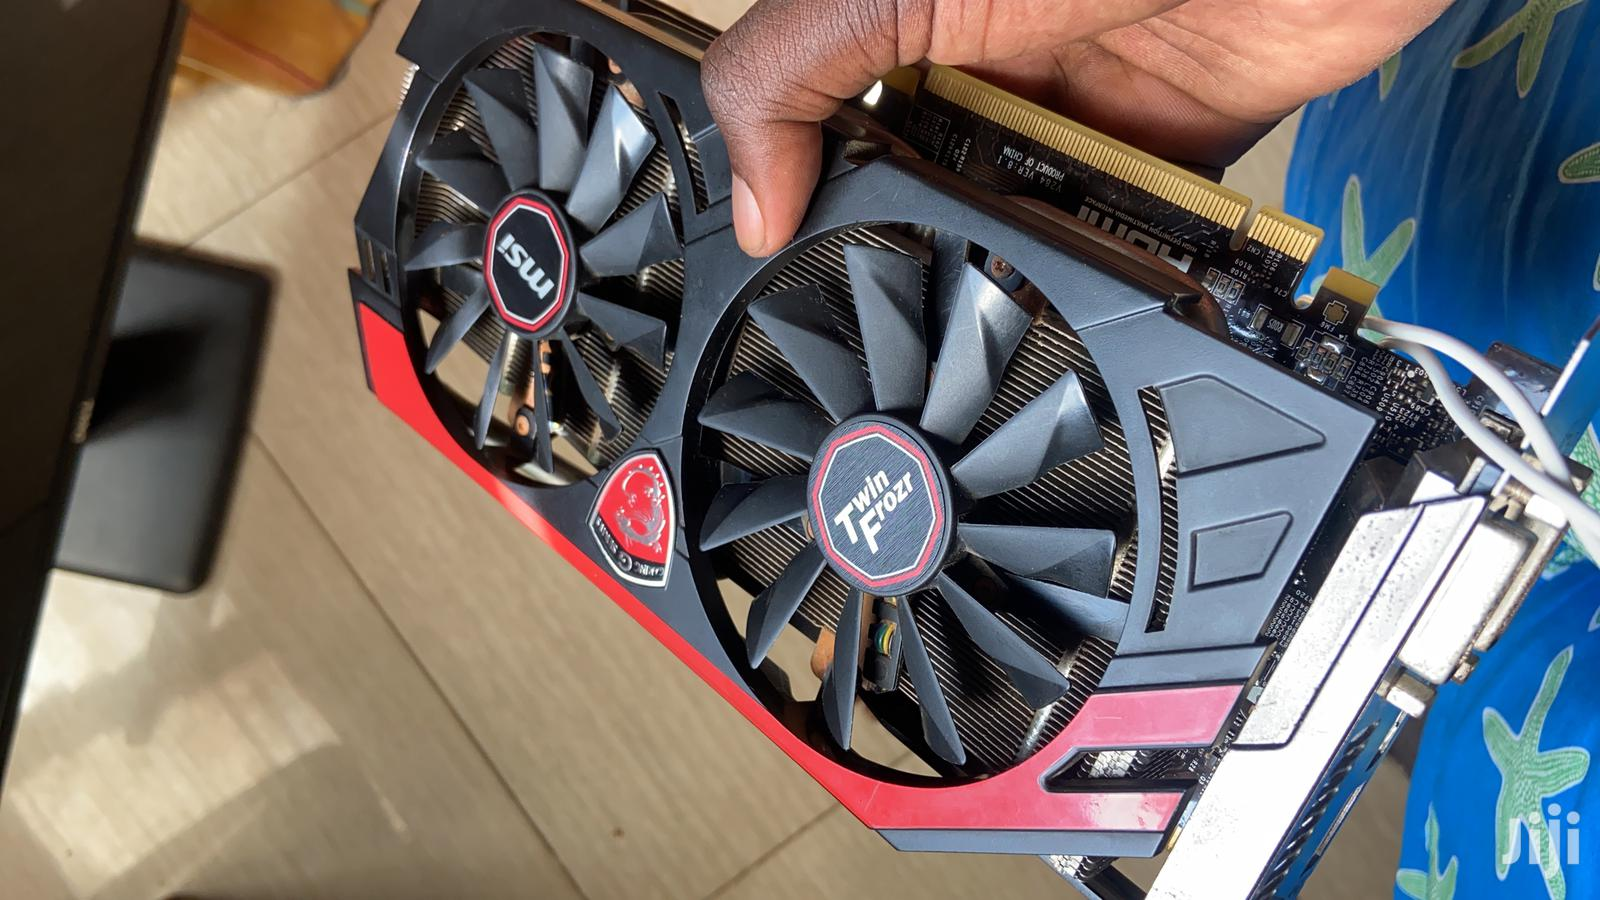 MSI Geforce Gtx 760 OC 2gb Vram